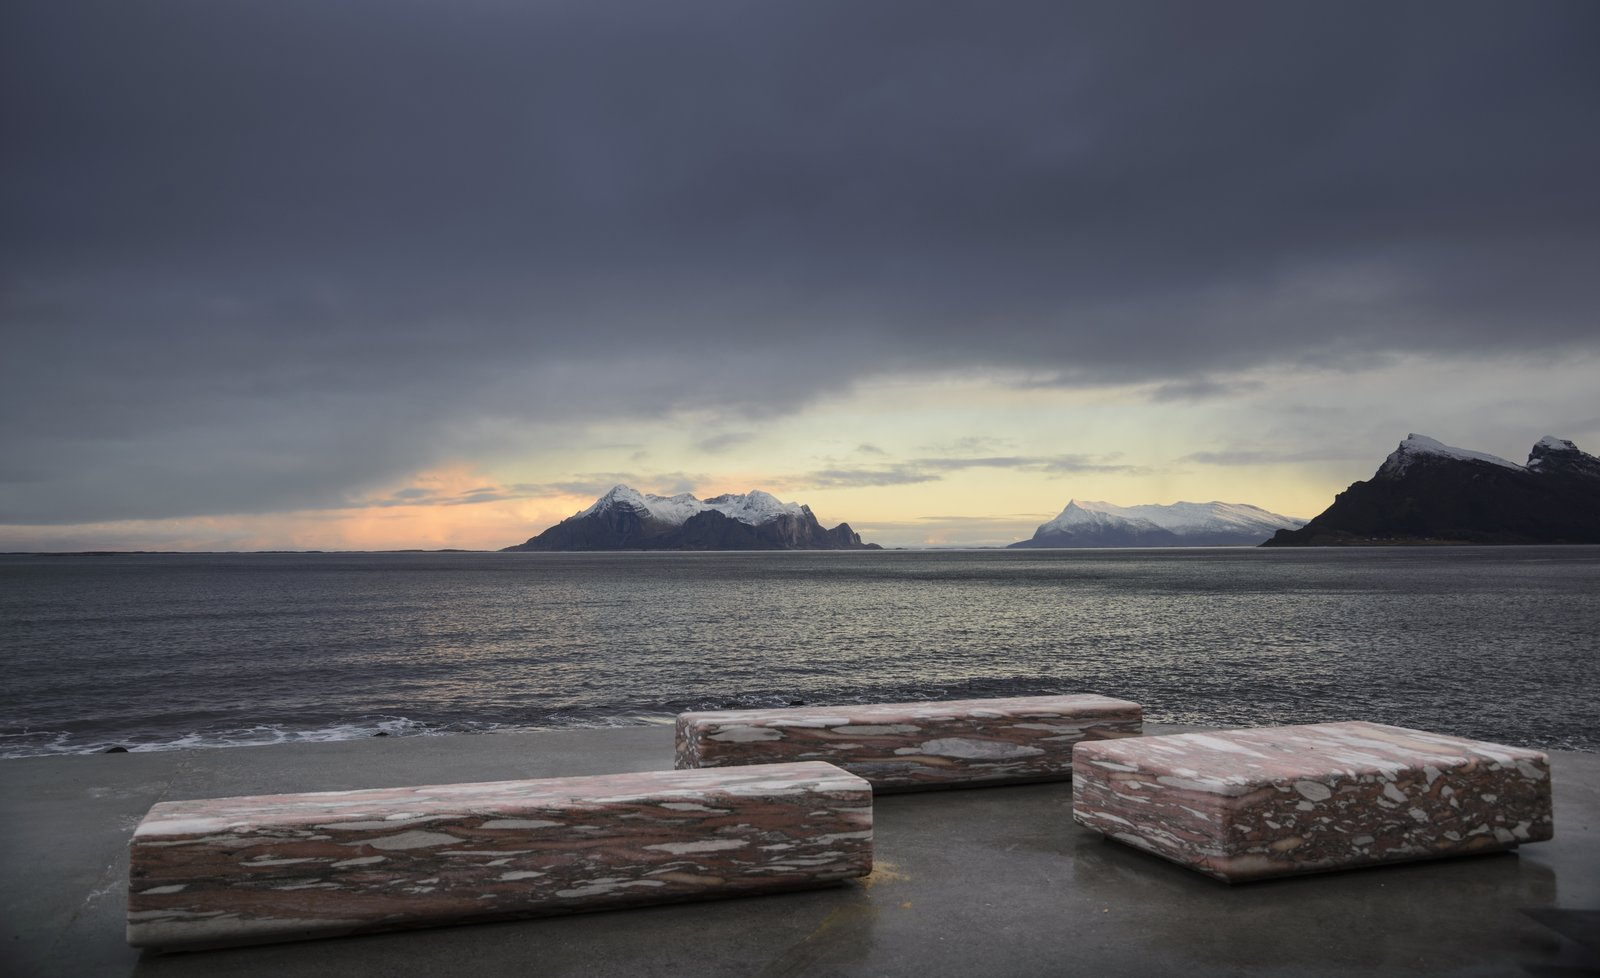 On the terrace, the benches are made from a distinctive marble that is typical of the Fauske region of Norway.